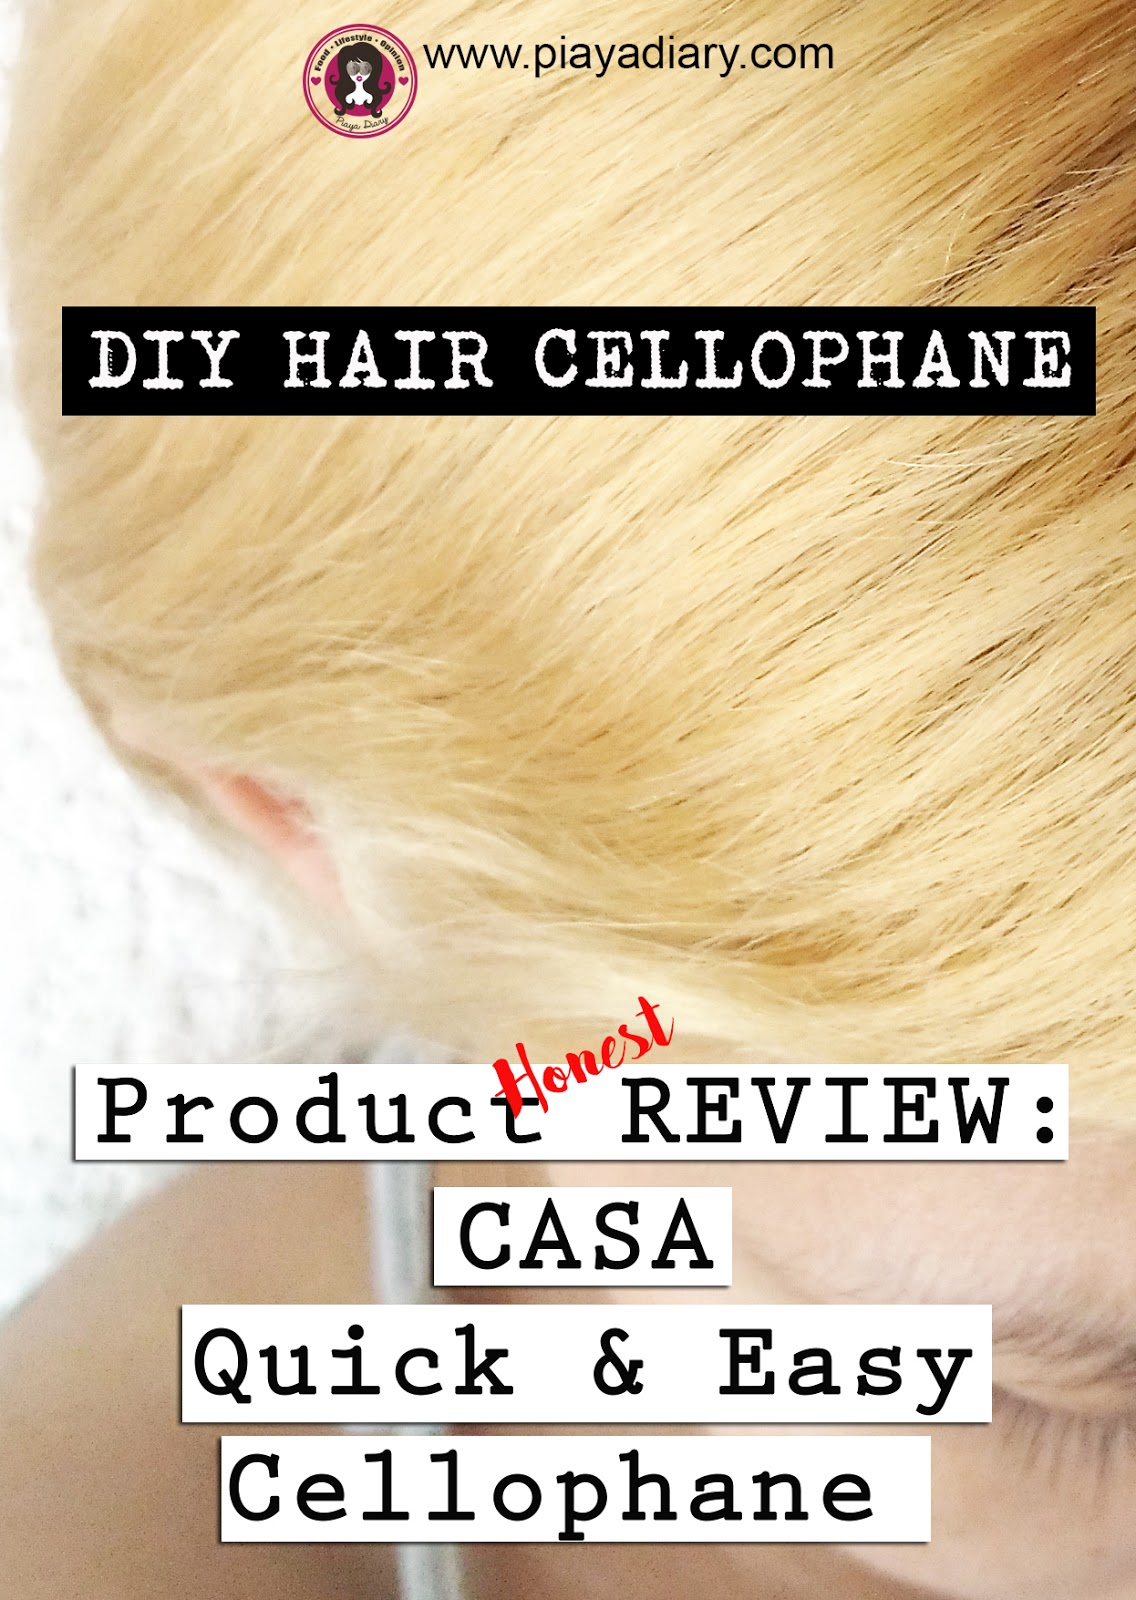 CASA Quick & Easy Cellophane